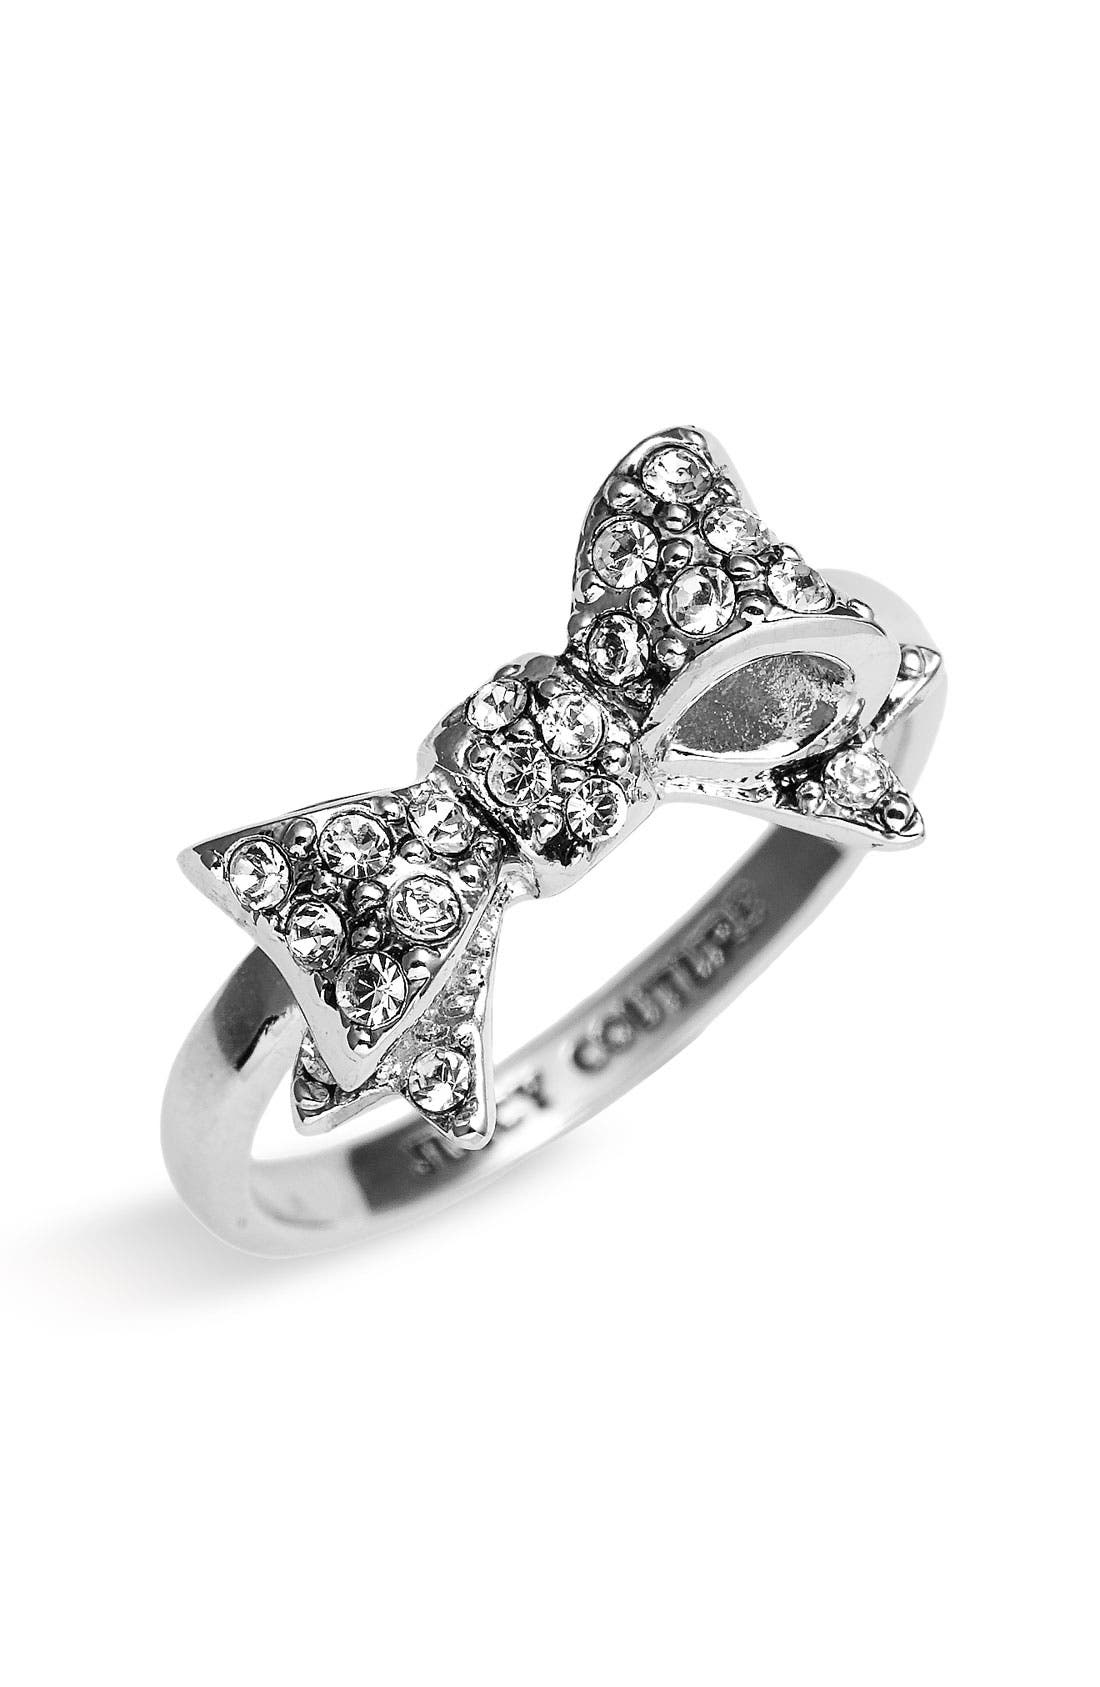 JUICY COUTURE 'Bows for a Starlet' Pavé Bow Ring, Main, color, 040